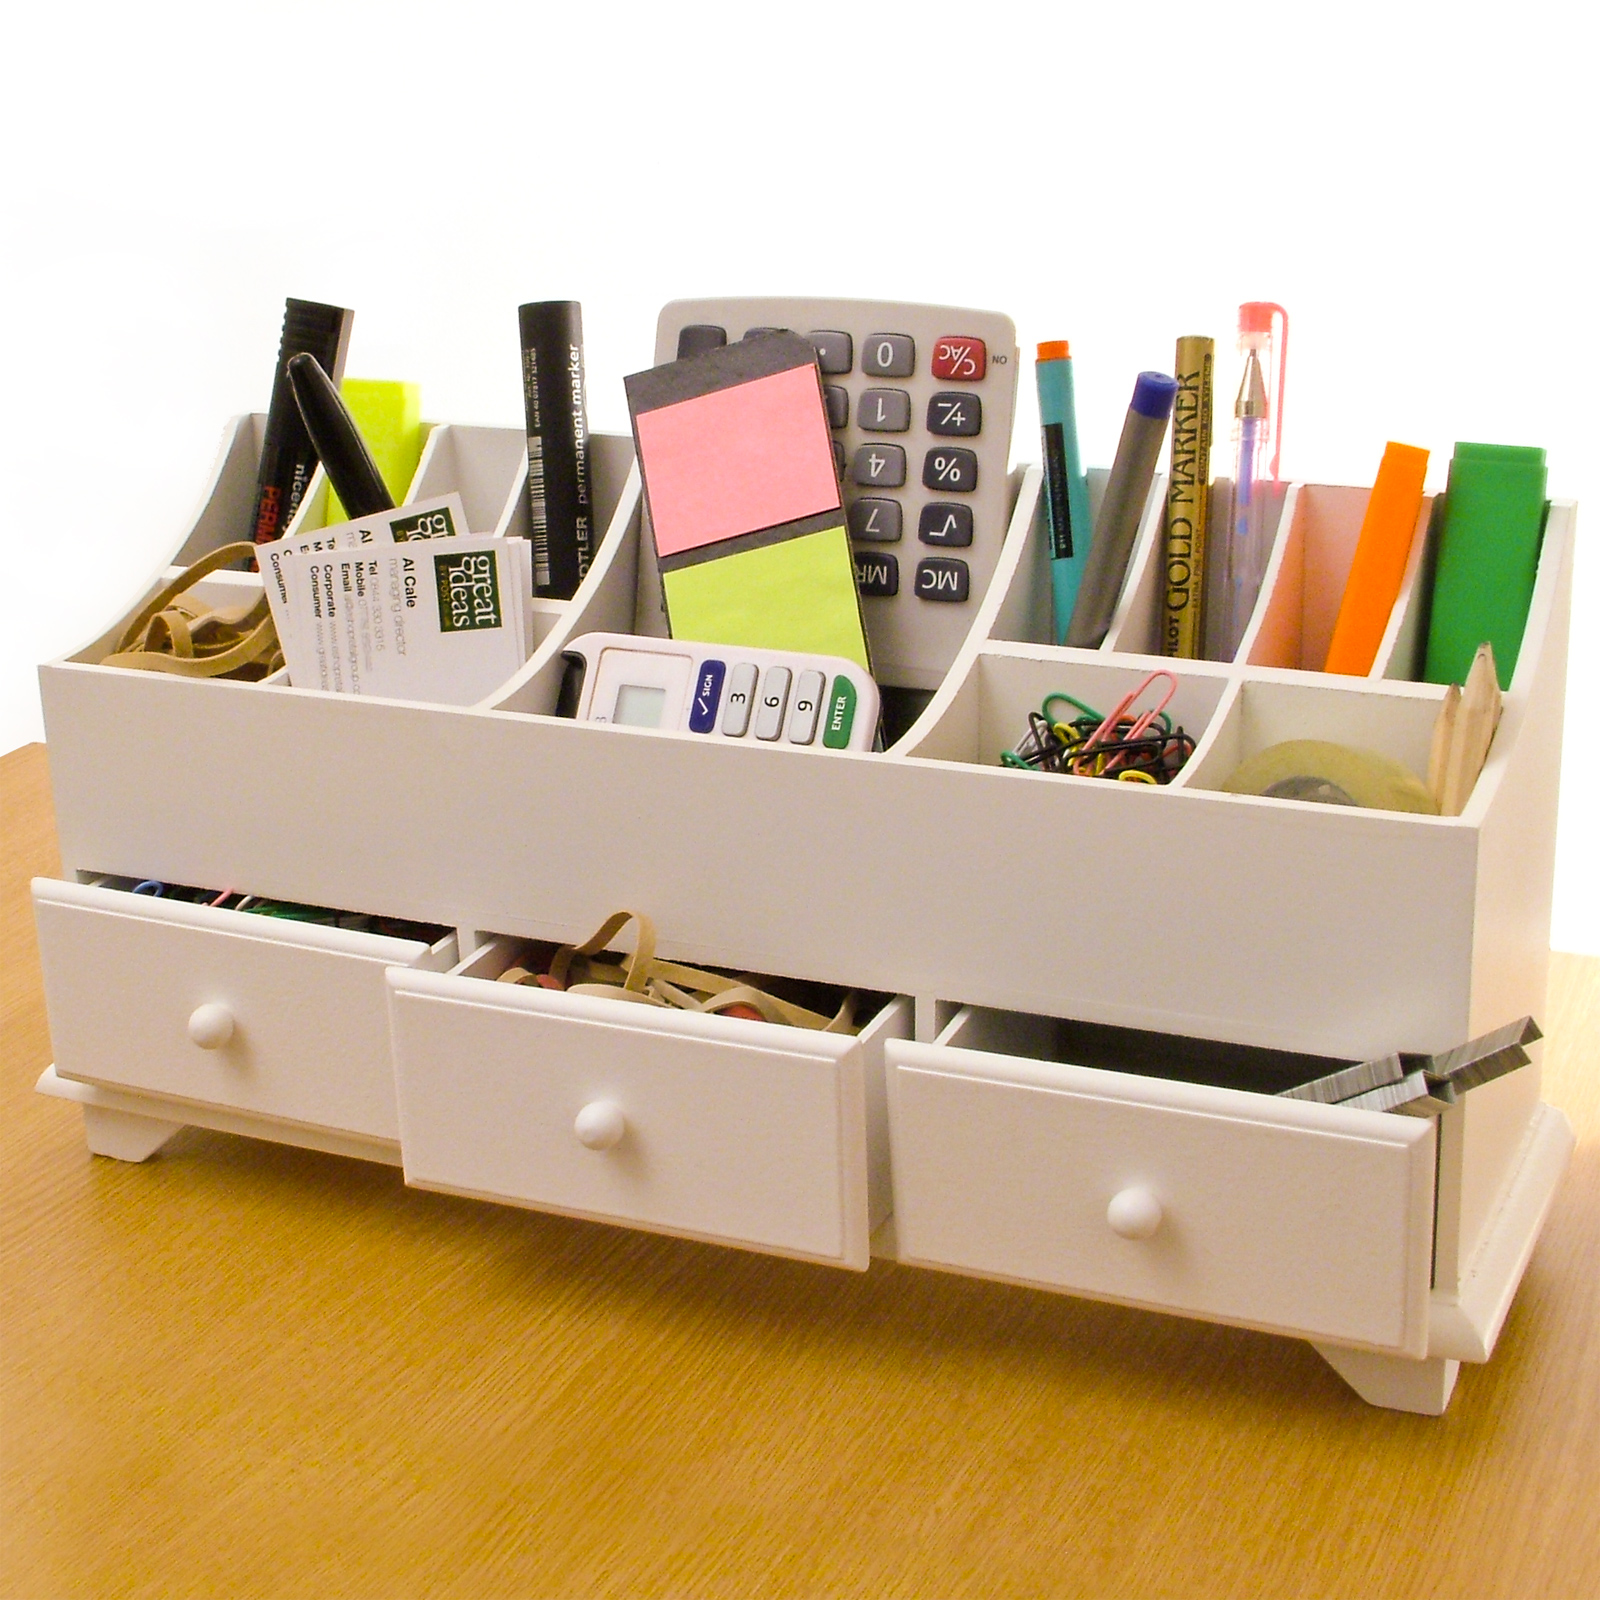 Multi Purpose Desk And Cosmetic Organiser Stylish Desk Organiser And. Full resolution‎  file, nominally Width 1600 Height 1600 pixels, file with #BC0F1E.